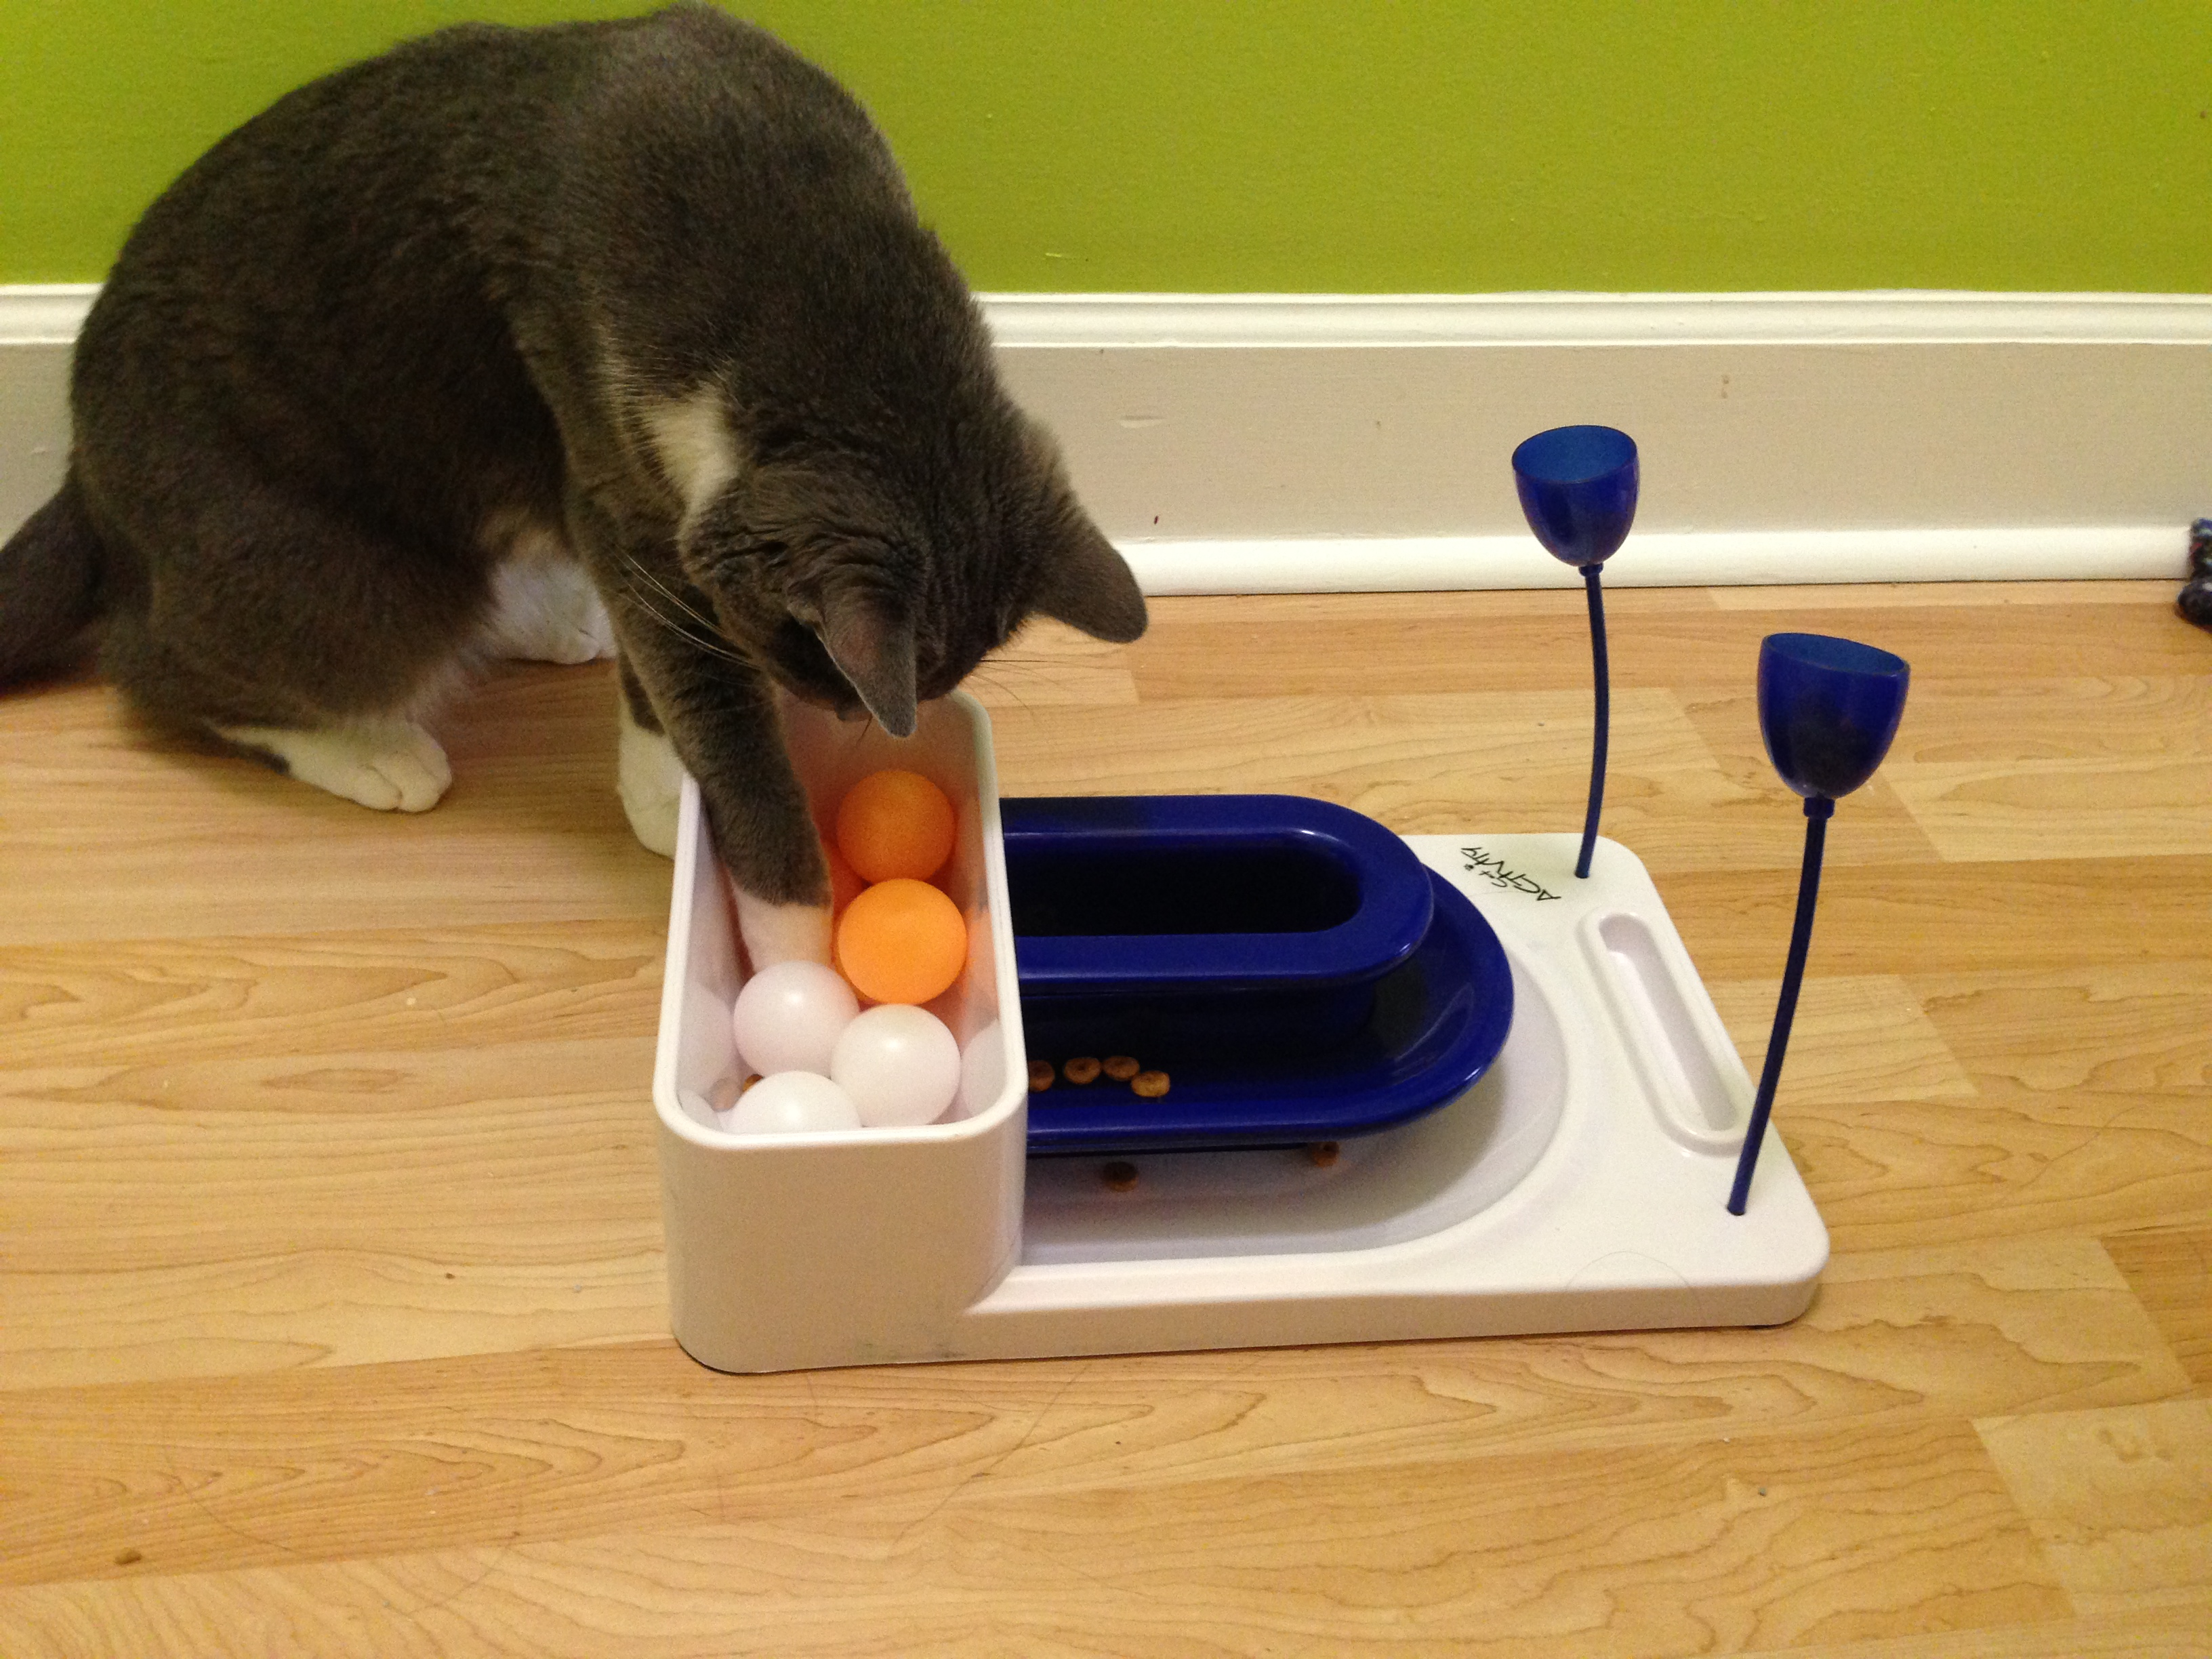 Ping-pongs are an obstacle to obtaining the food.